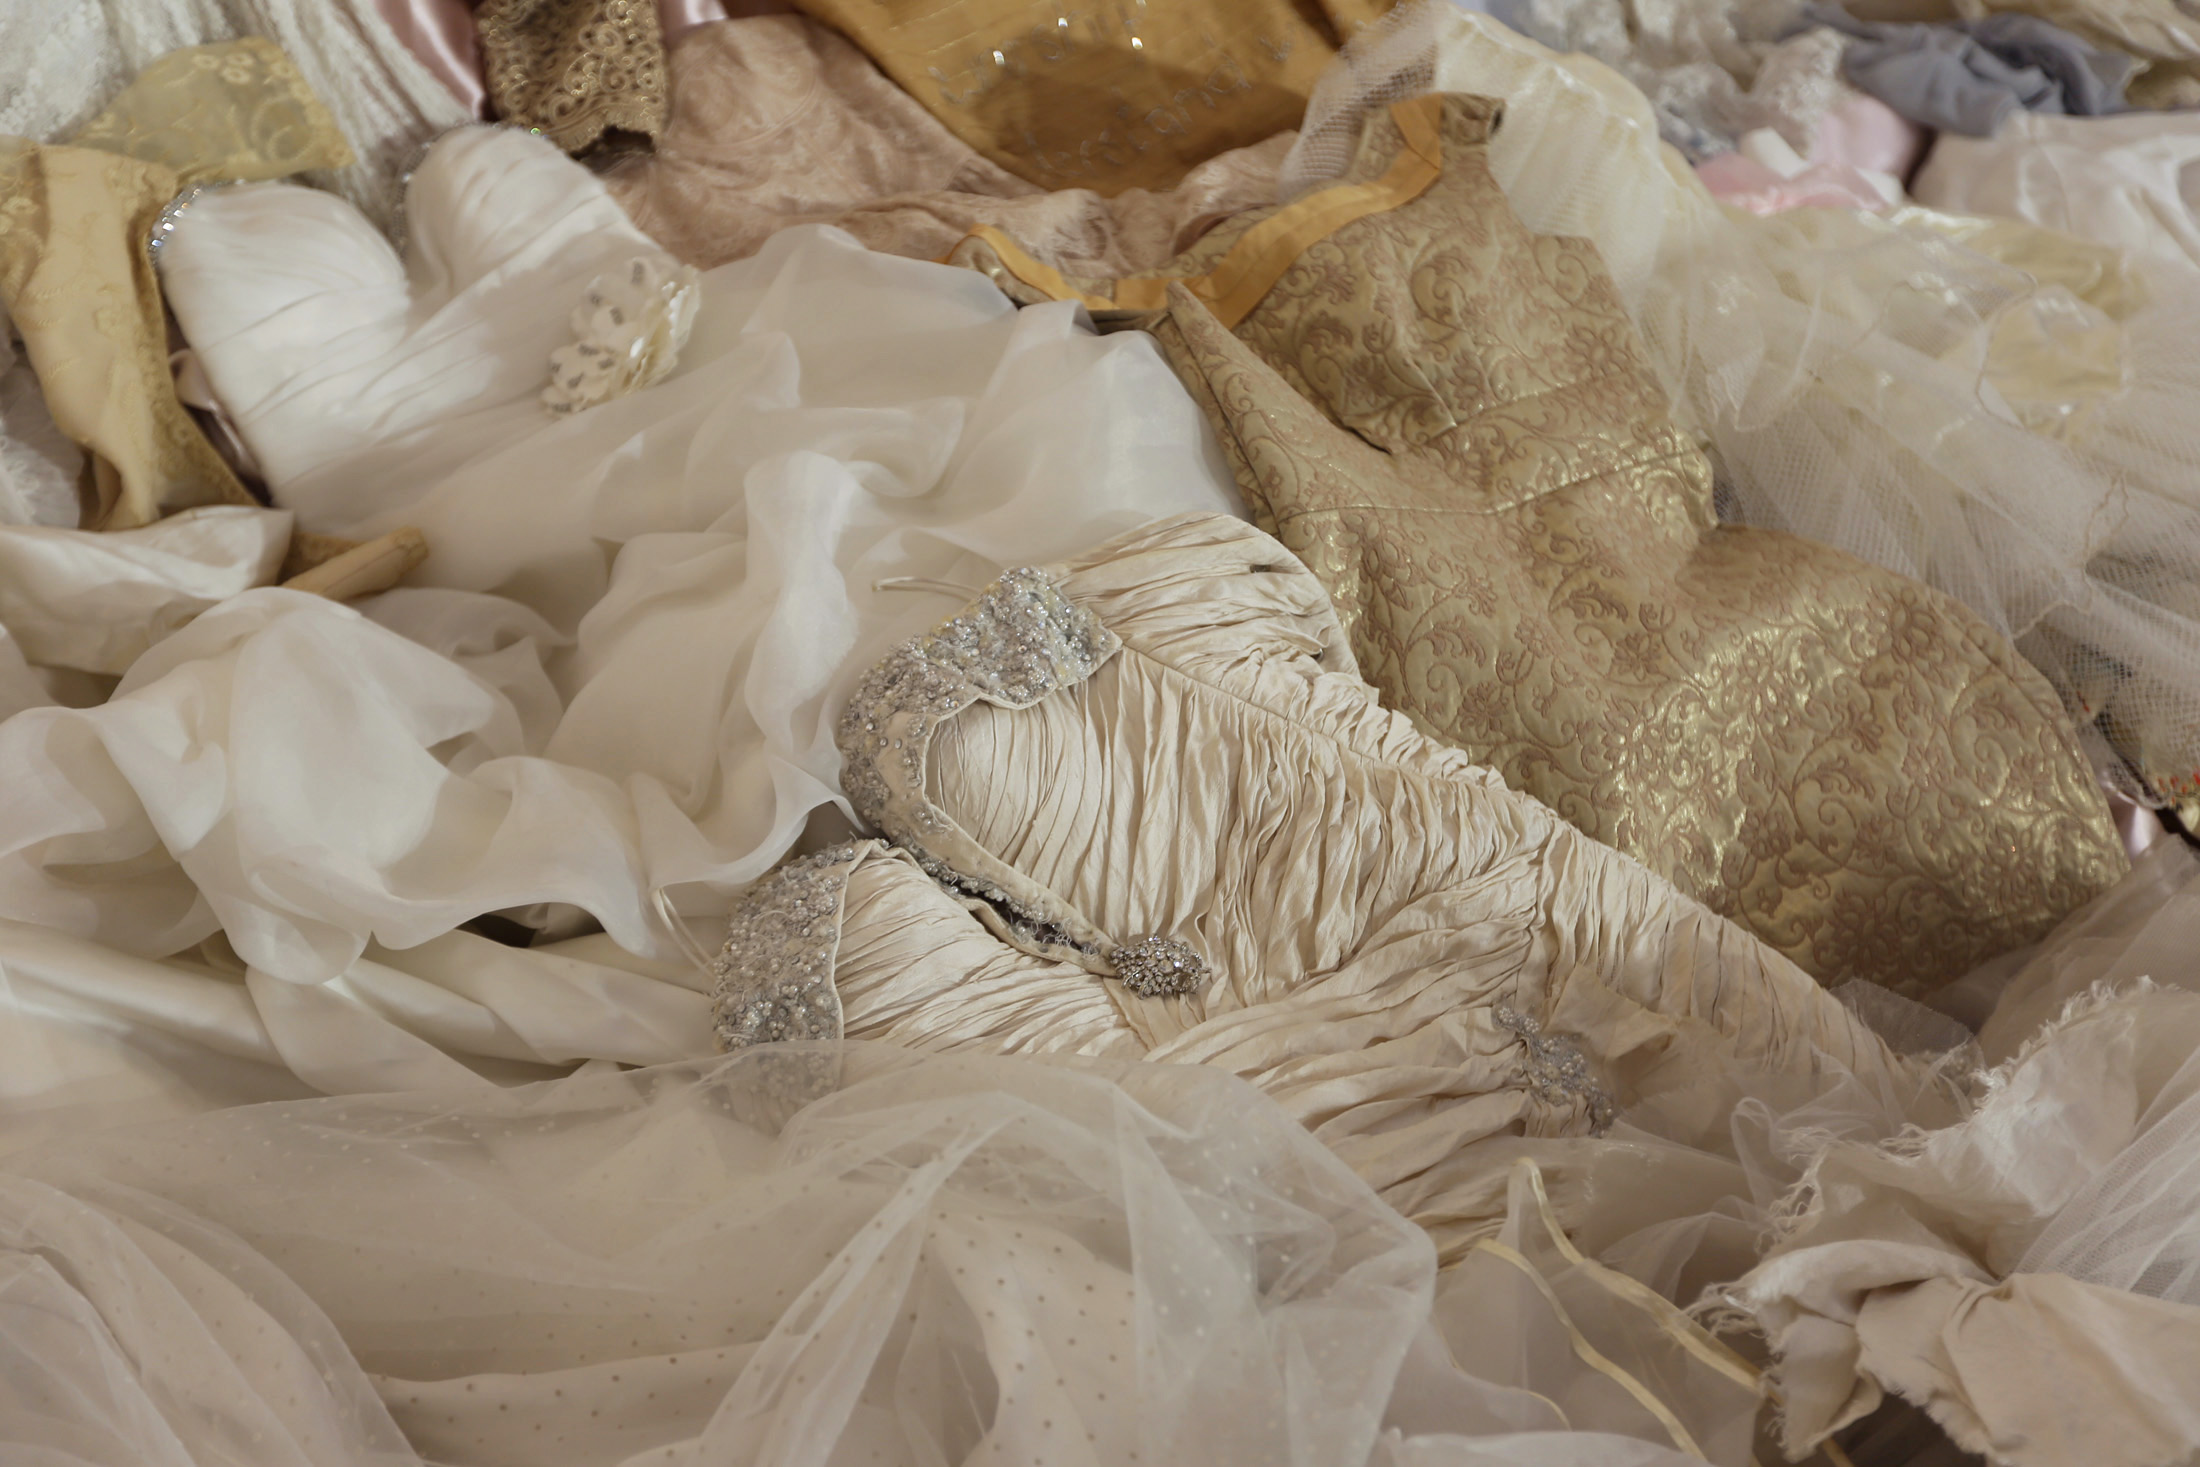 Frances   Goodman   ,   The Dream , (detail)   (2010-2016). Silk, lace, organza, satin, beads and embroidery thread, wedding dresses, sound installation. Courtesy of the artist and Richard Taittinger Gallery, New York.